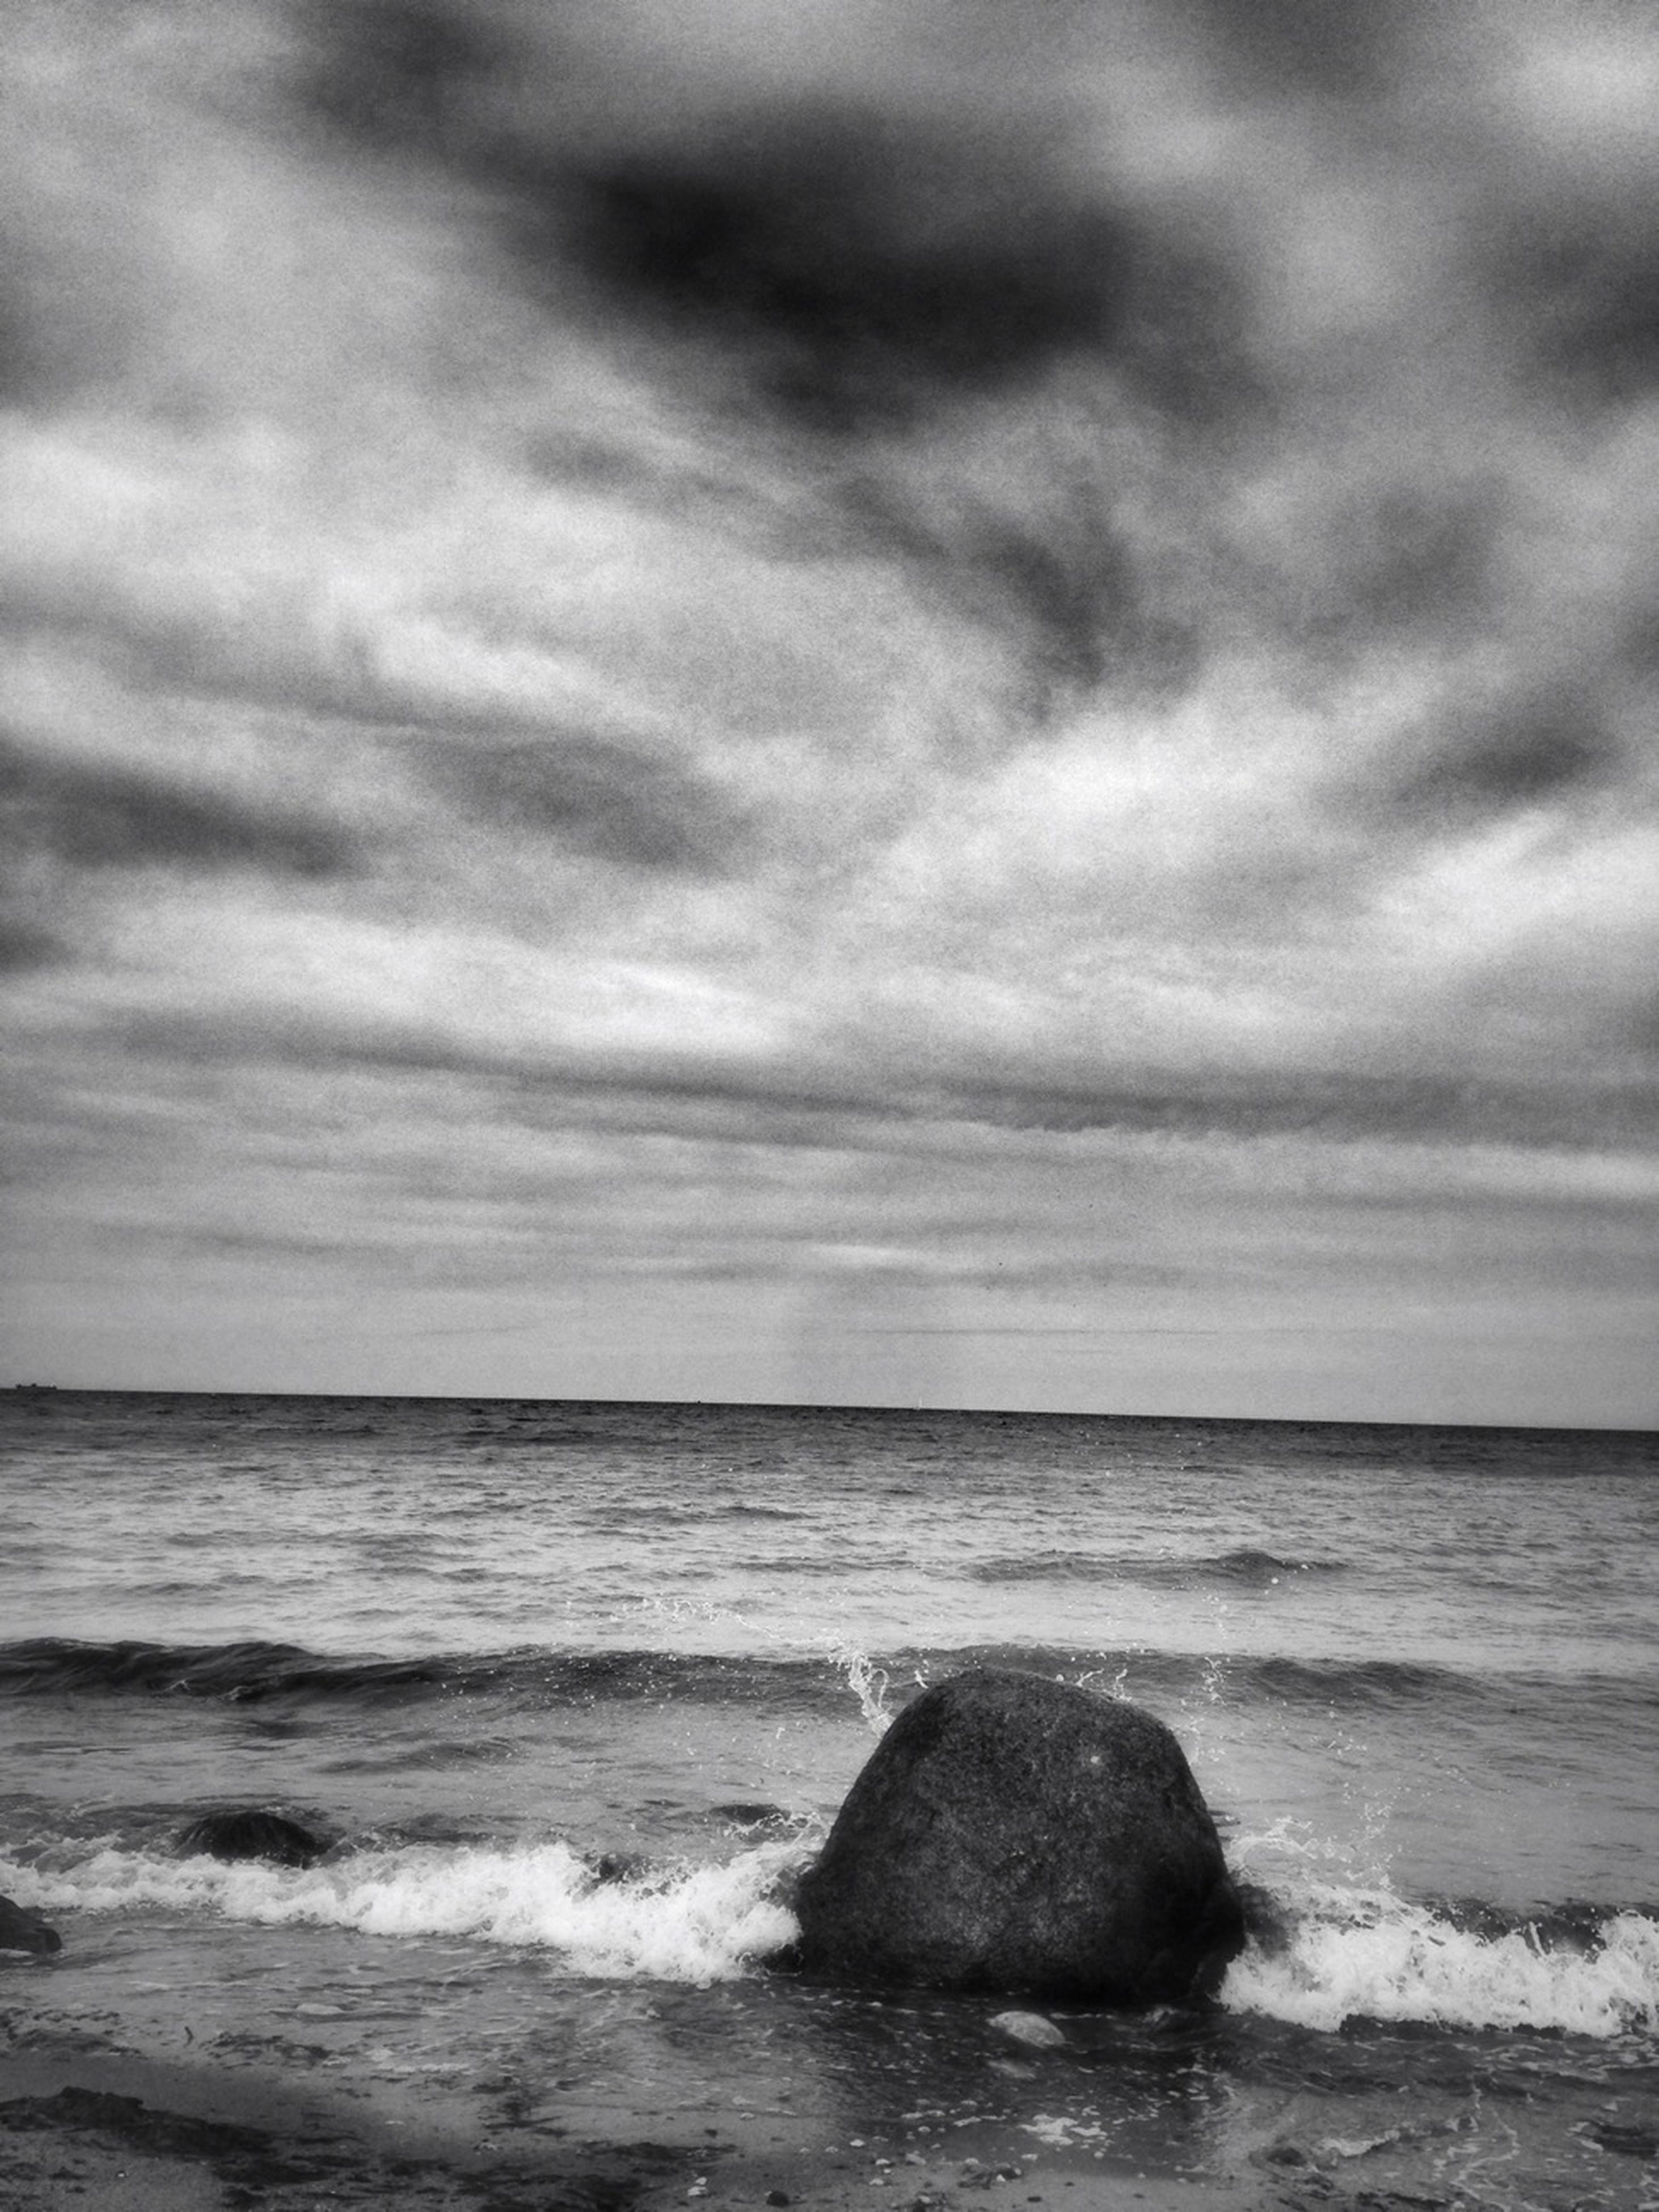 sea, horizon over water, water, sky, scenics, wave, beach, beauty in nature, tranquil scene, cloud - sky, shore, surf, tranquility, nature, cloudy, rock - object, idyllic, cloud, overcast, outdoors